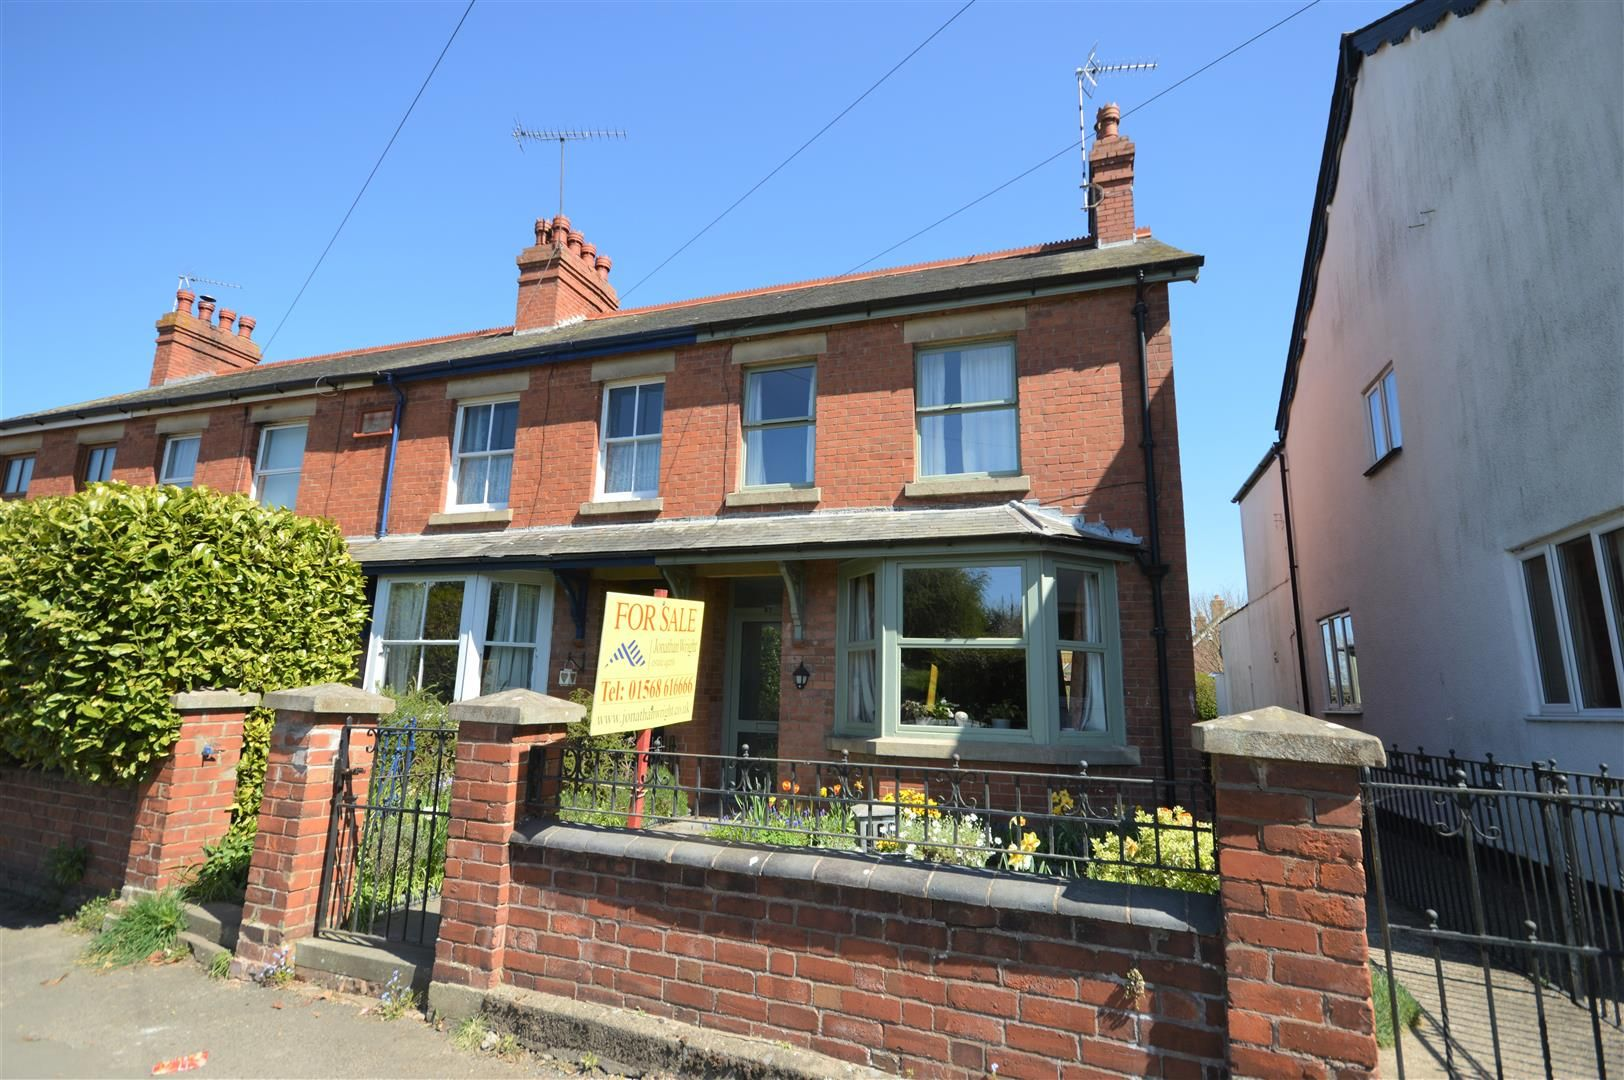 3 bed end of terrace for sale in Leominster 1